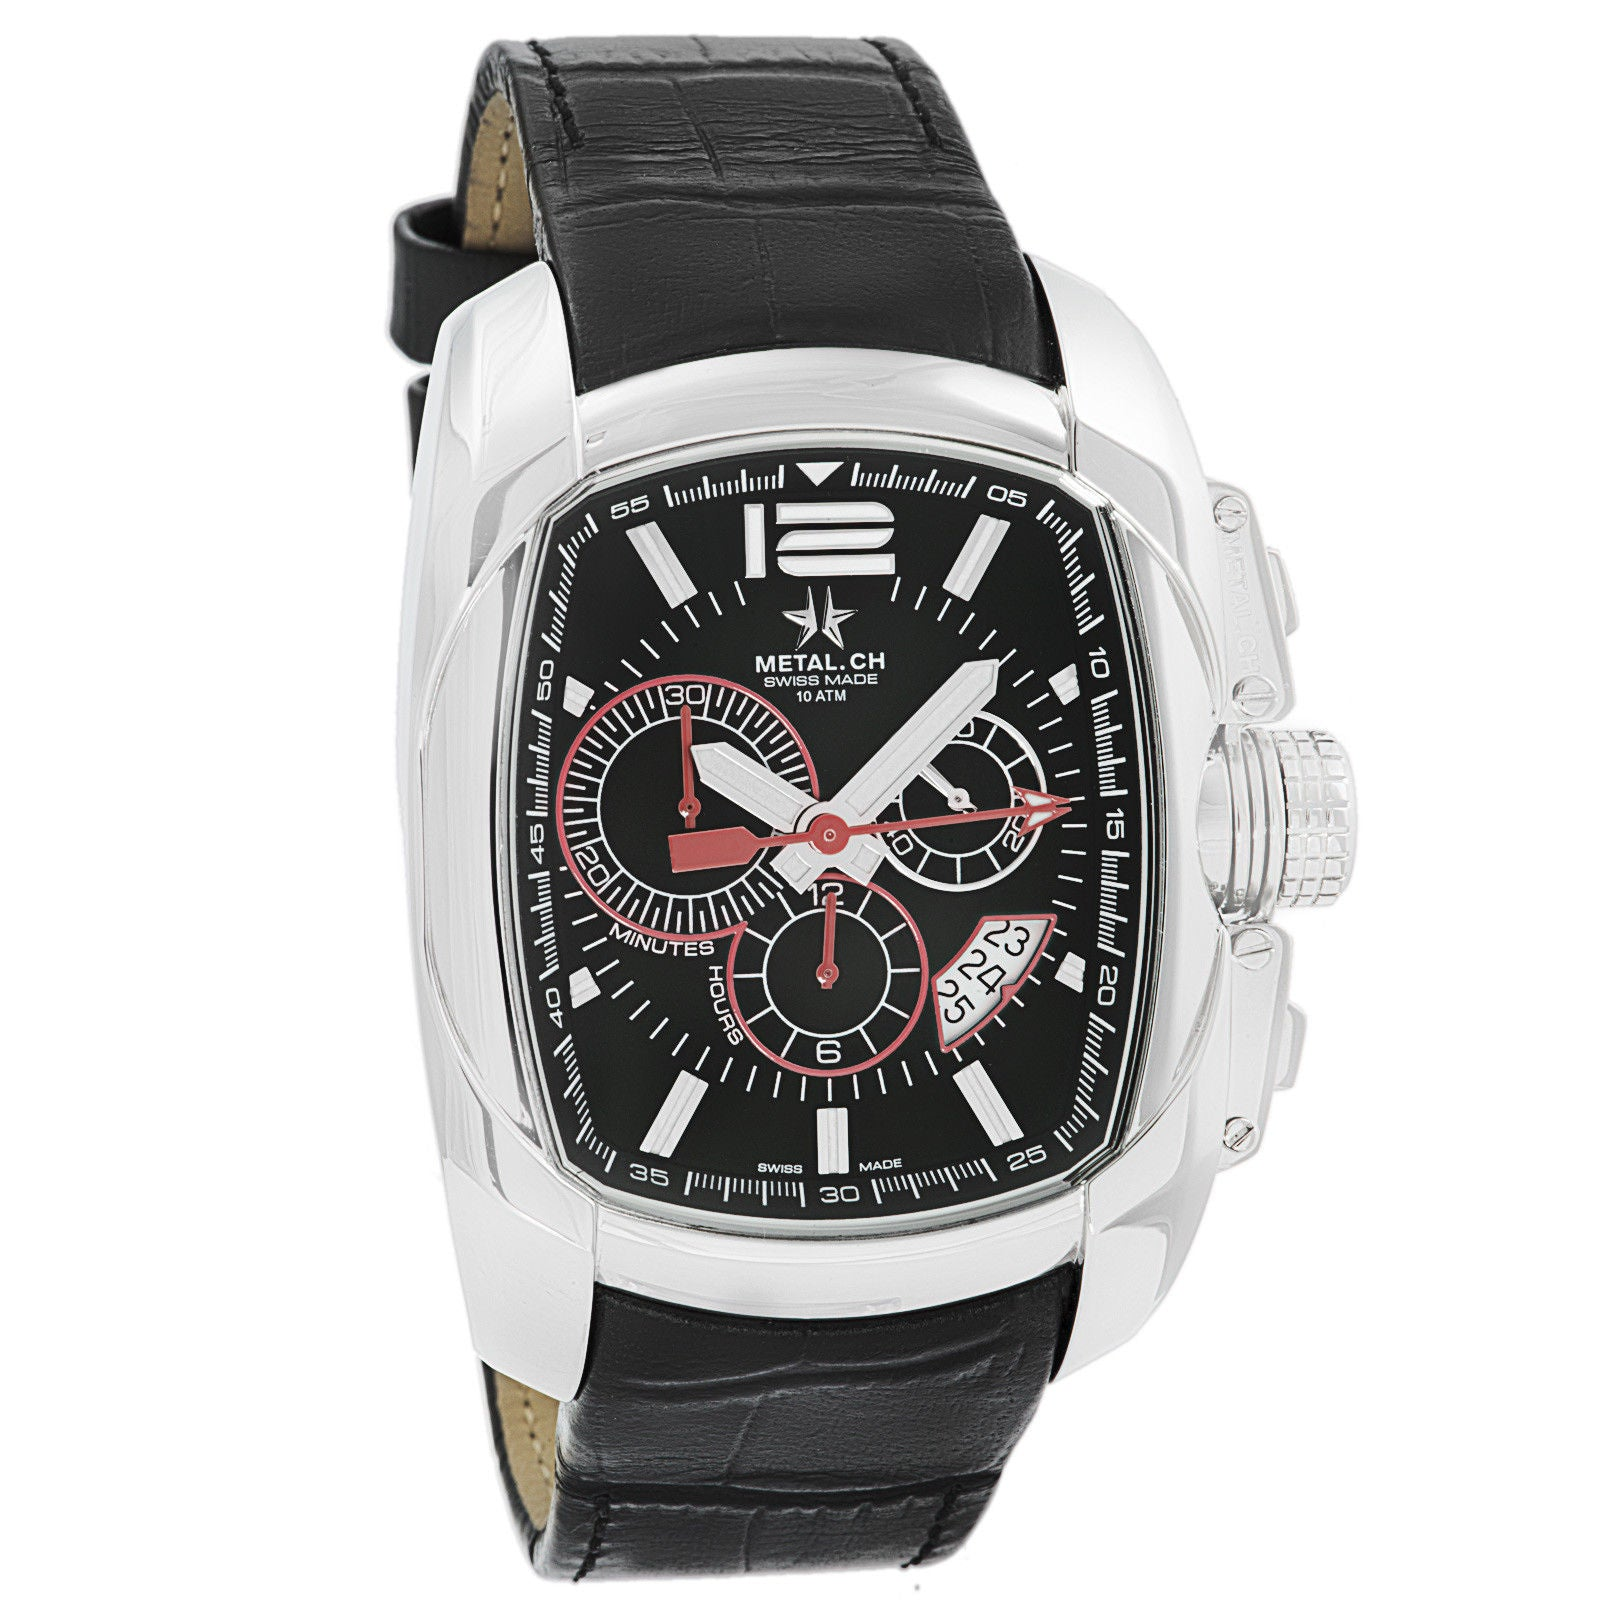 Chronometrie Club Series Mens Chronograph Swiss Made Watch 5120.47-Luxury Watches | Mens And Ladies Luxury Watches | Upscale Time